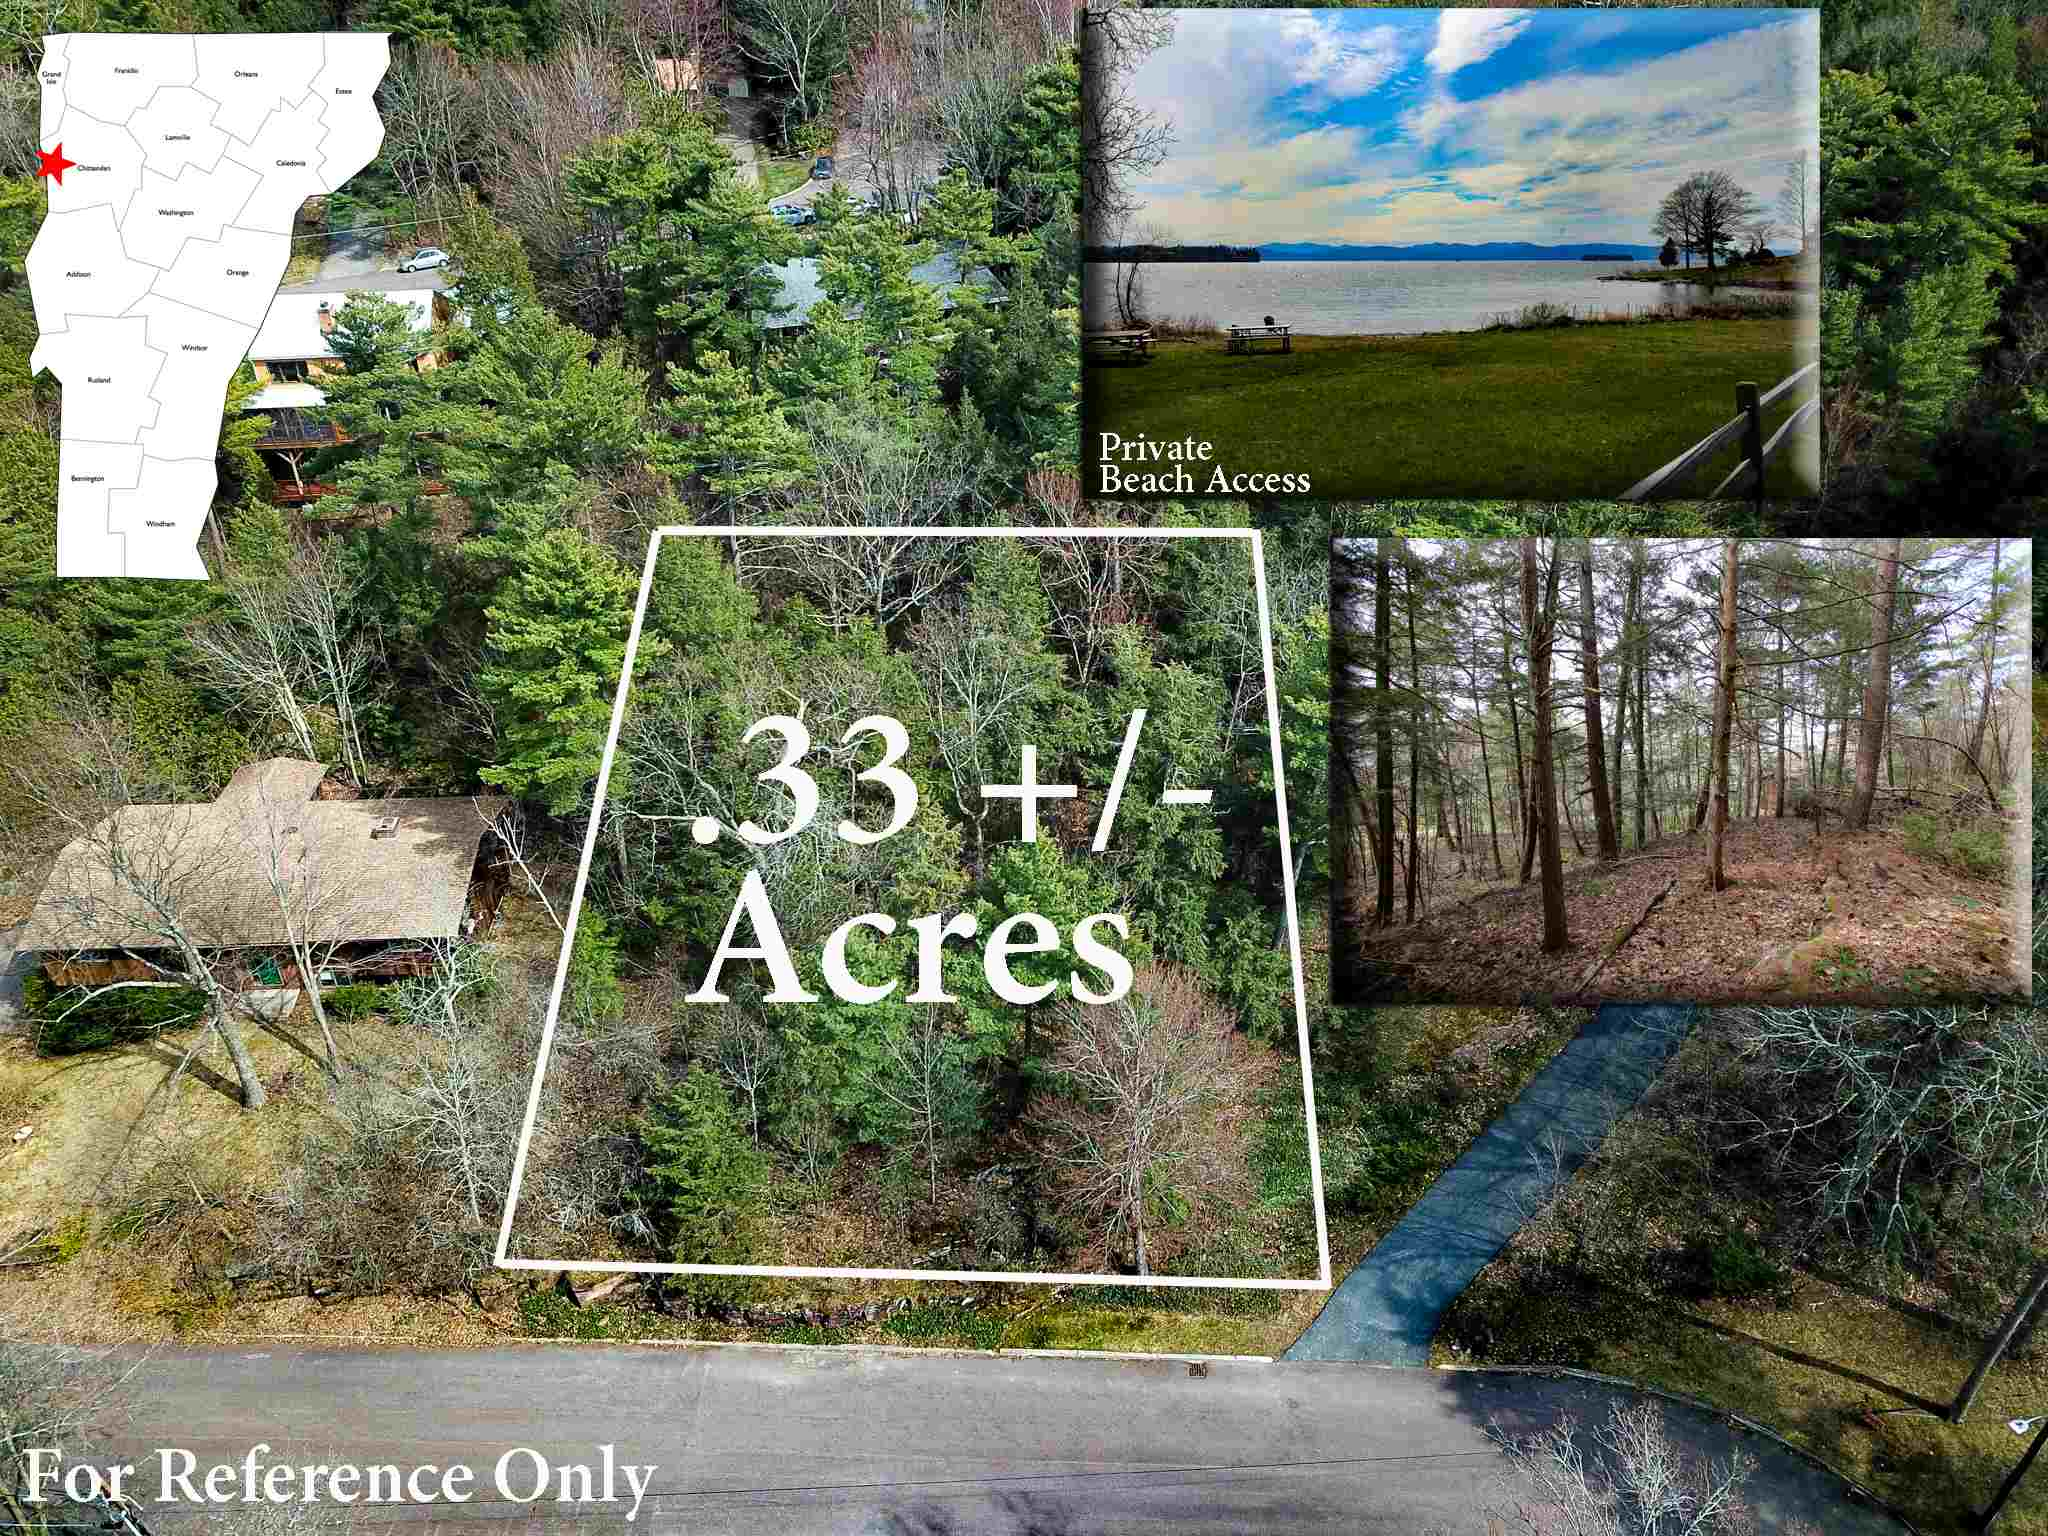 Imagine your dream home set on a .33 +/- acre lot within walking distance to the shores of Lake Champlain in the coveted south end neighborhood of Burlington, VT! One of the last remaining building lots in the beautiful South Cove Association residential area, the wooded lot offers a peaceful location with potential for a home site with public water and sewer hookup available. With an annual HOA fee of only $140, you'll enjoy access to the privately-maintained HOA beach and picnic area with gorgeous views of the Adirondacks & mooring rights! Seemingly endless summer recreational opportunities are in the surrounding area with the parcel situated between Red Rocks and Oakledge Park, both only a short walk or drive away! There are two utility poles located nearby the lot serviced by Burlington Electric Department. The land enjoys approximately 100' of road frontage along the paved, town maintained and plowed, South Cove Road. High-speed internet, TV, and phone are available to neighboring homes along South Cove Road through Comcast. Located in the South End of Burlington, all city employment, entertainment, and amenities are conveniently within minutes from the property, including the city bus line that offers an easy commute into Burlington downtown and many other nearby employment hubs. City Market and the south end shopping plazas are within 5 minutes away, and the I-189 beltway is only 2 miles away offering easy access to I-89. Come see all that this lot has to offer!